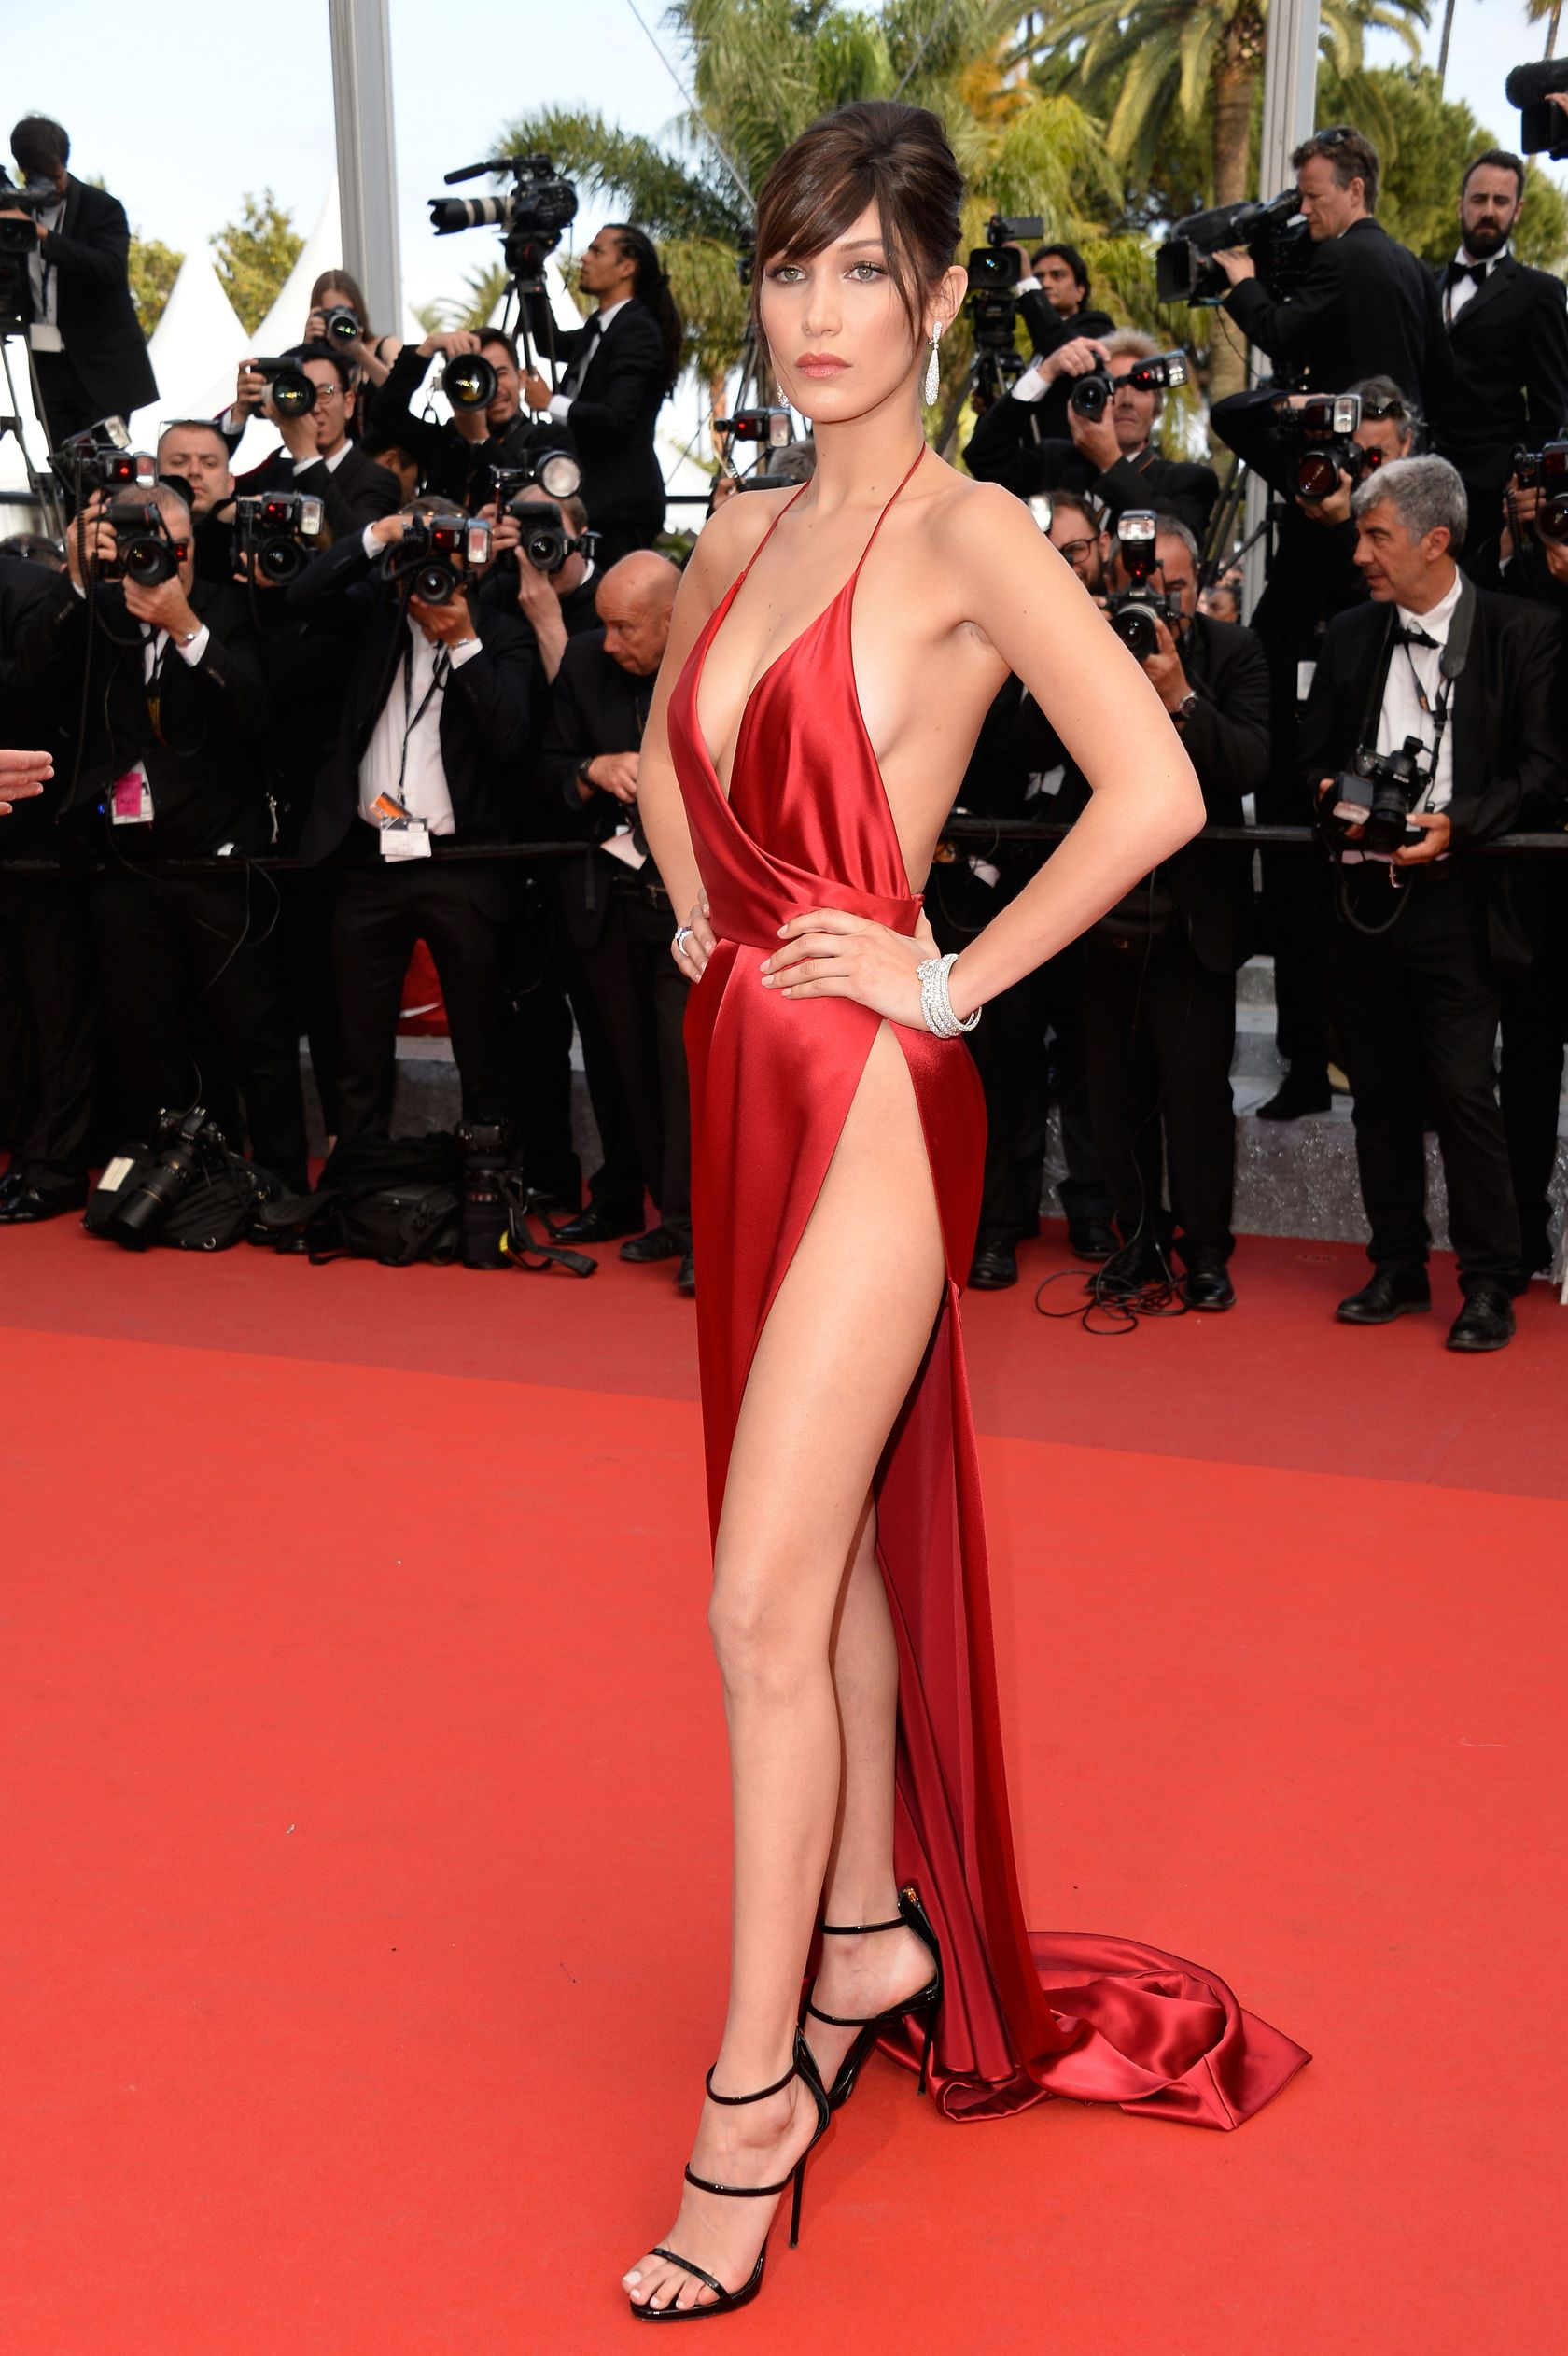 Bella Hadid In Alexandre Vauthier At The Cannes Film Festival Photo